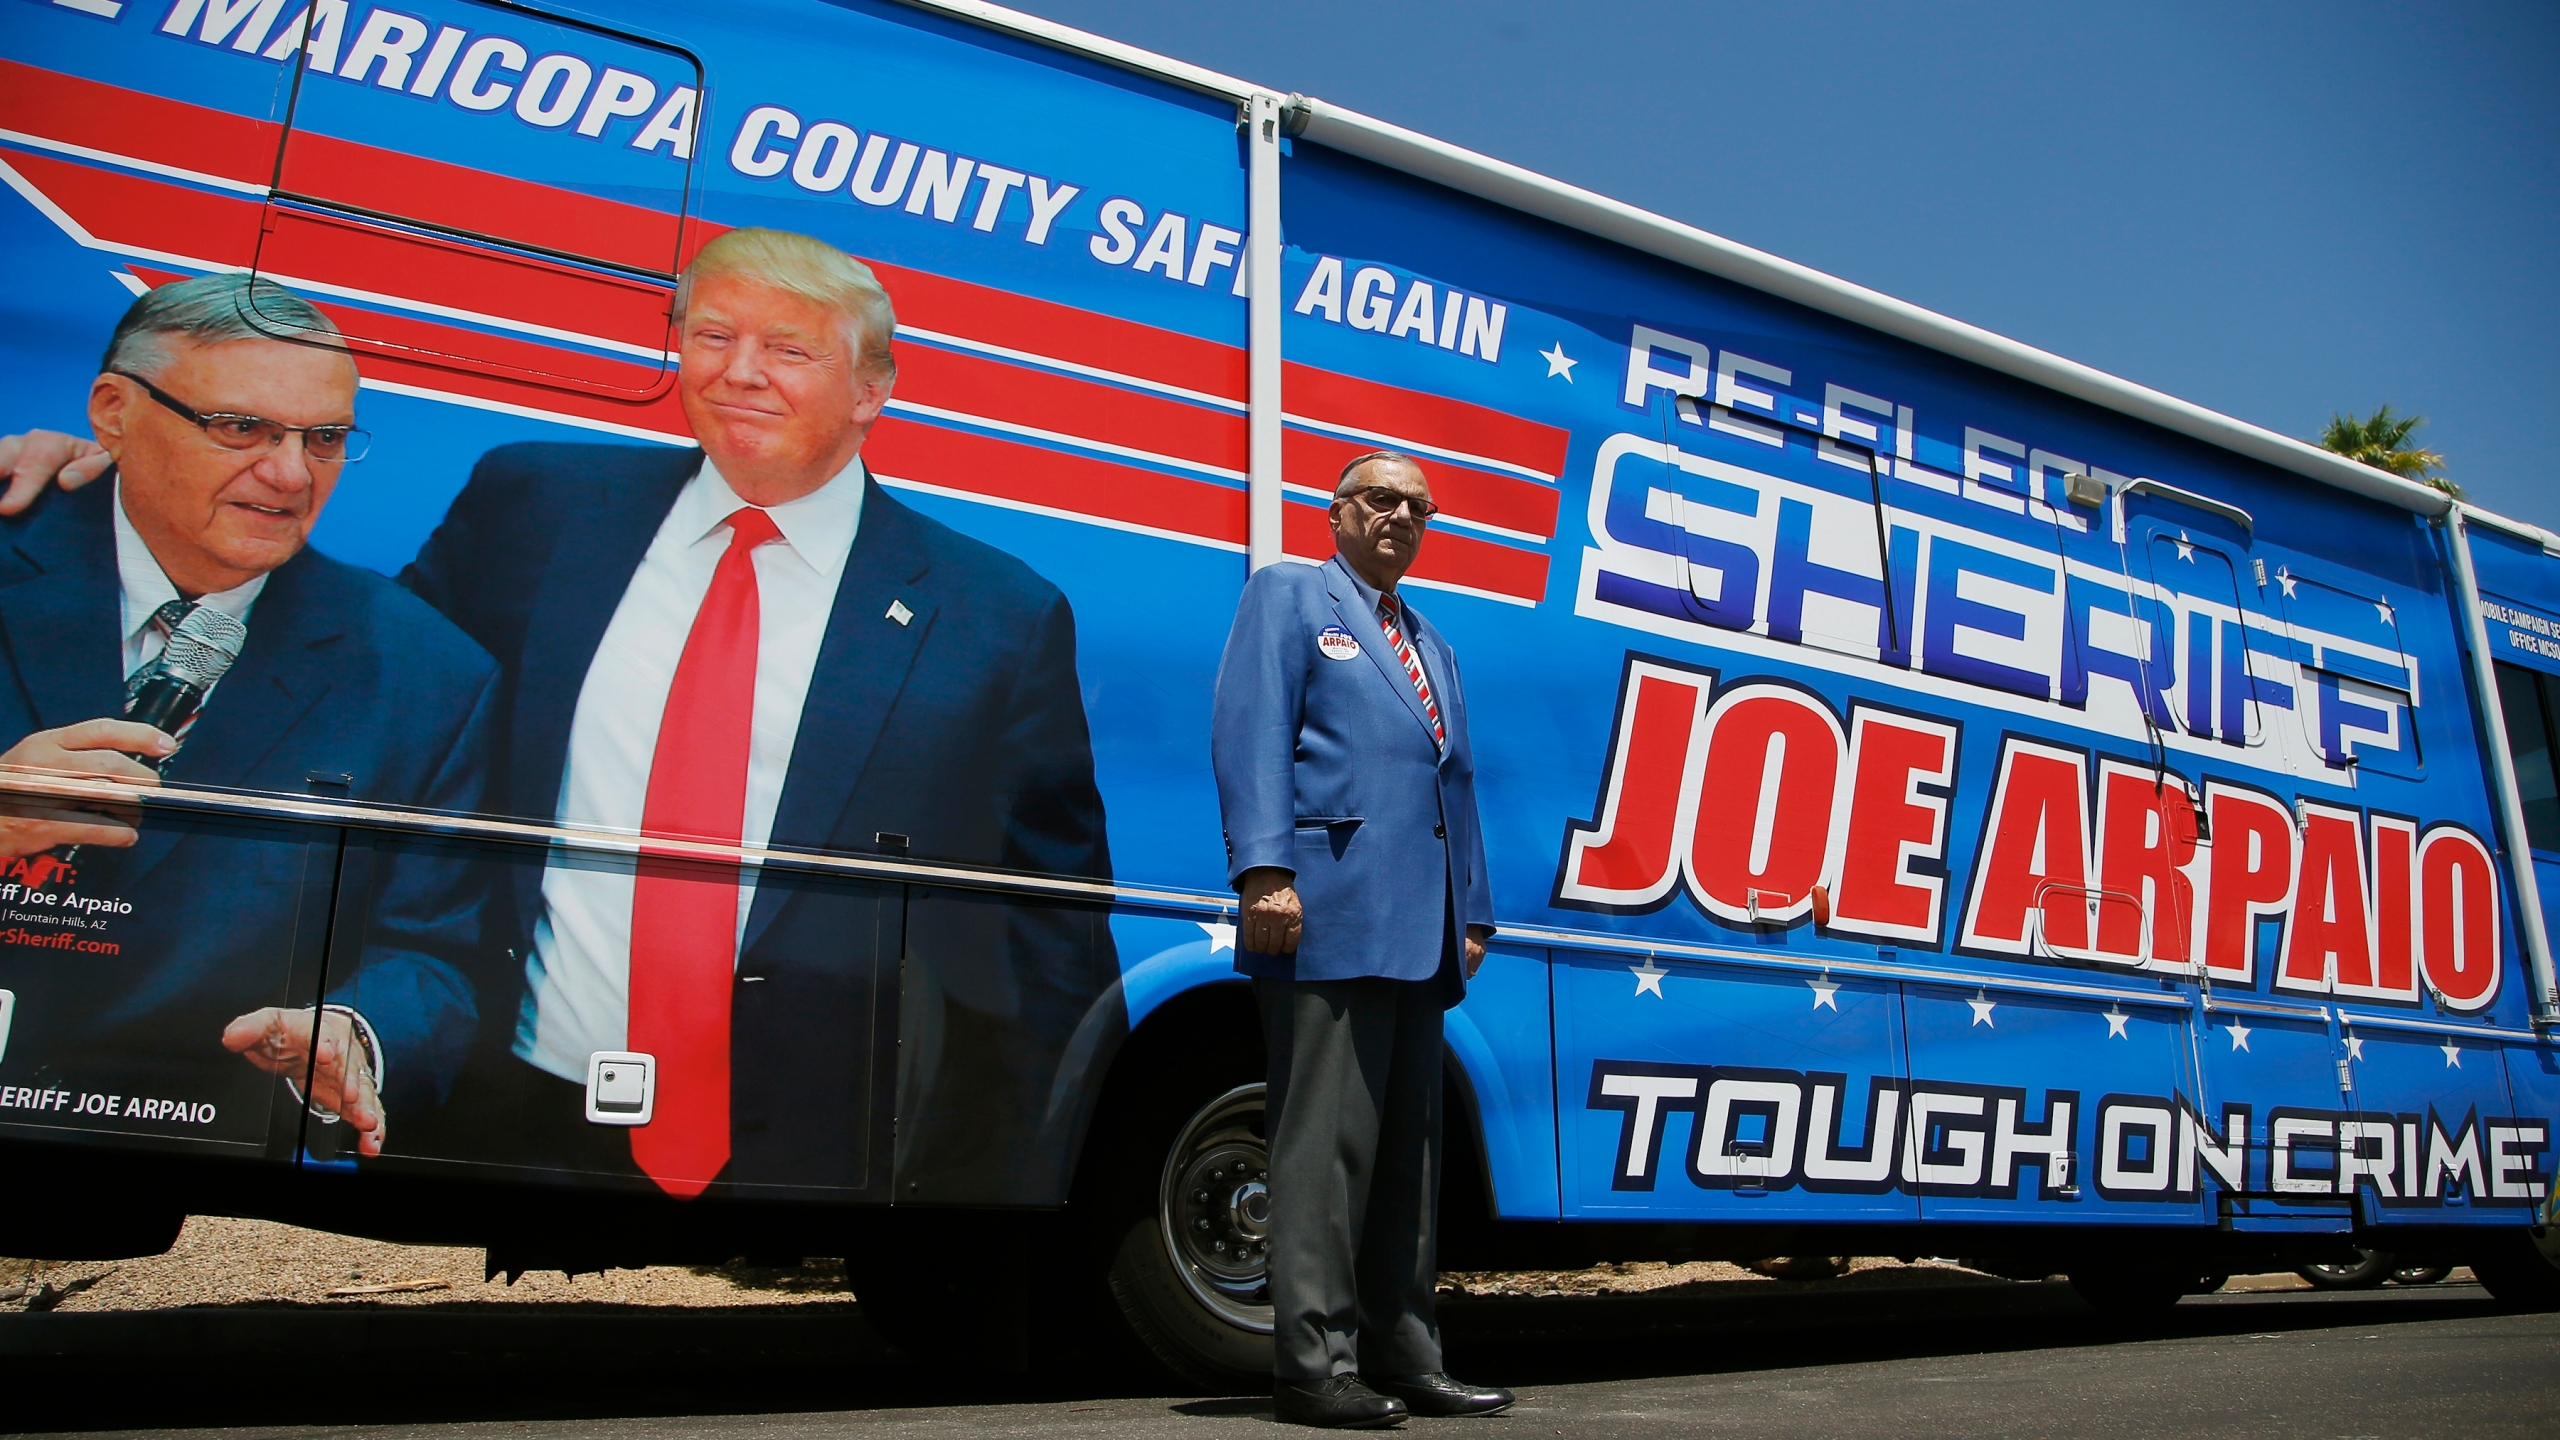 Former Maricopa County Sheriff Joe Arpaio, poses for a photograph in front of his campaign vehicle as he ran for his former position of Maricopa County Sheriff again on July 22, 2020. (Ross D. Franklin/Associated Press)